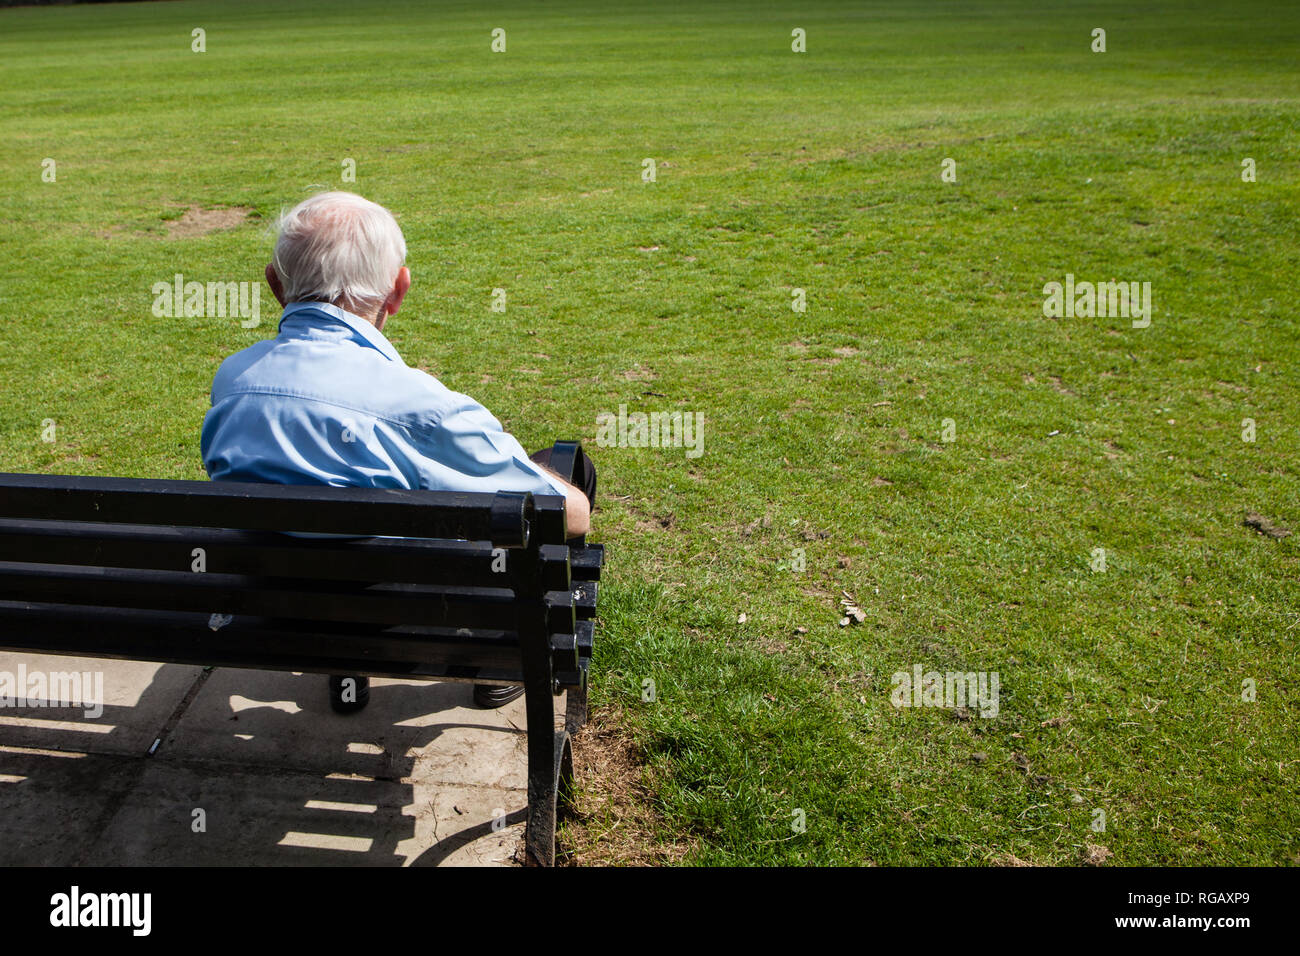 Old man on bench looking out at a park in Summer Stock Photo